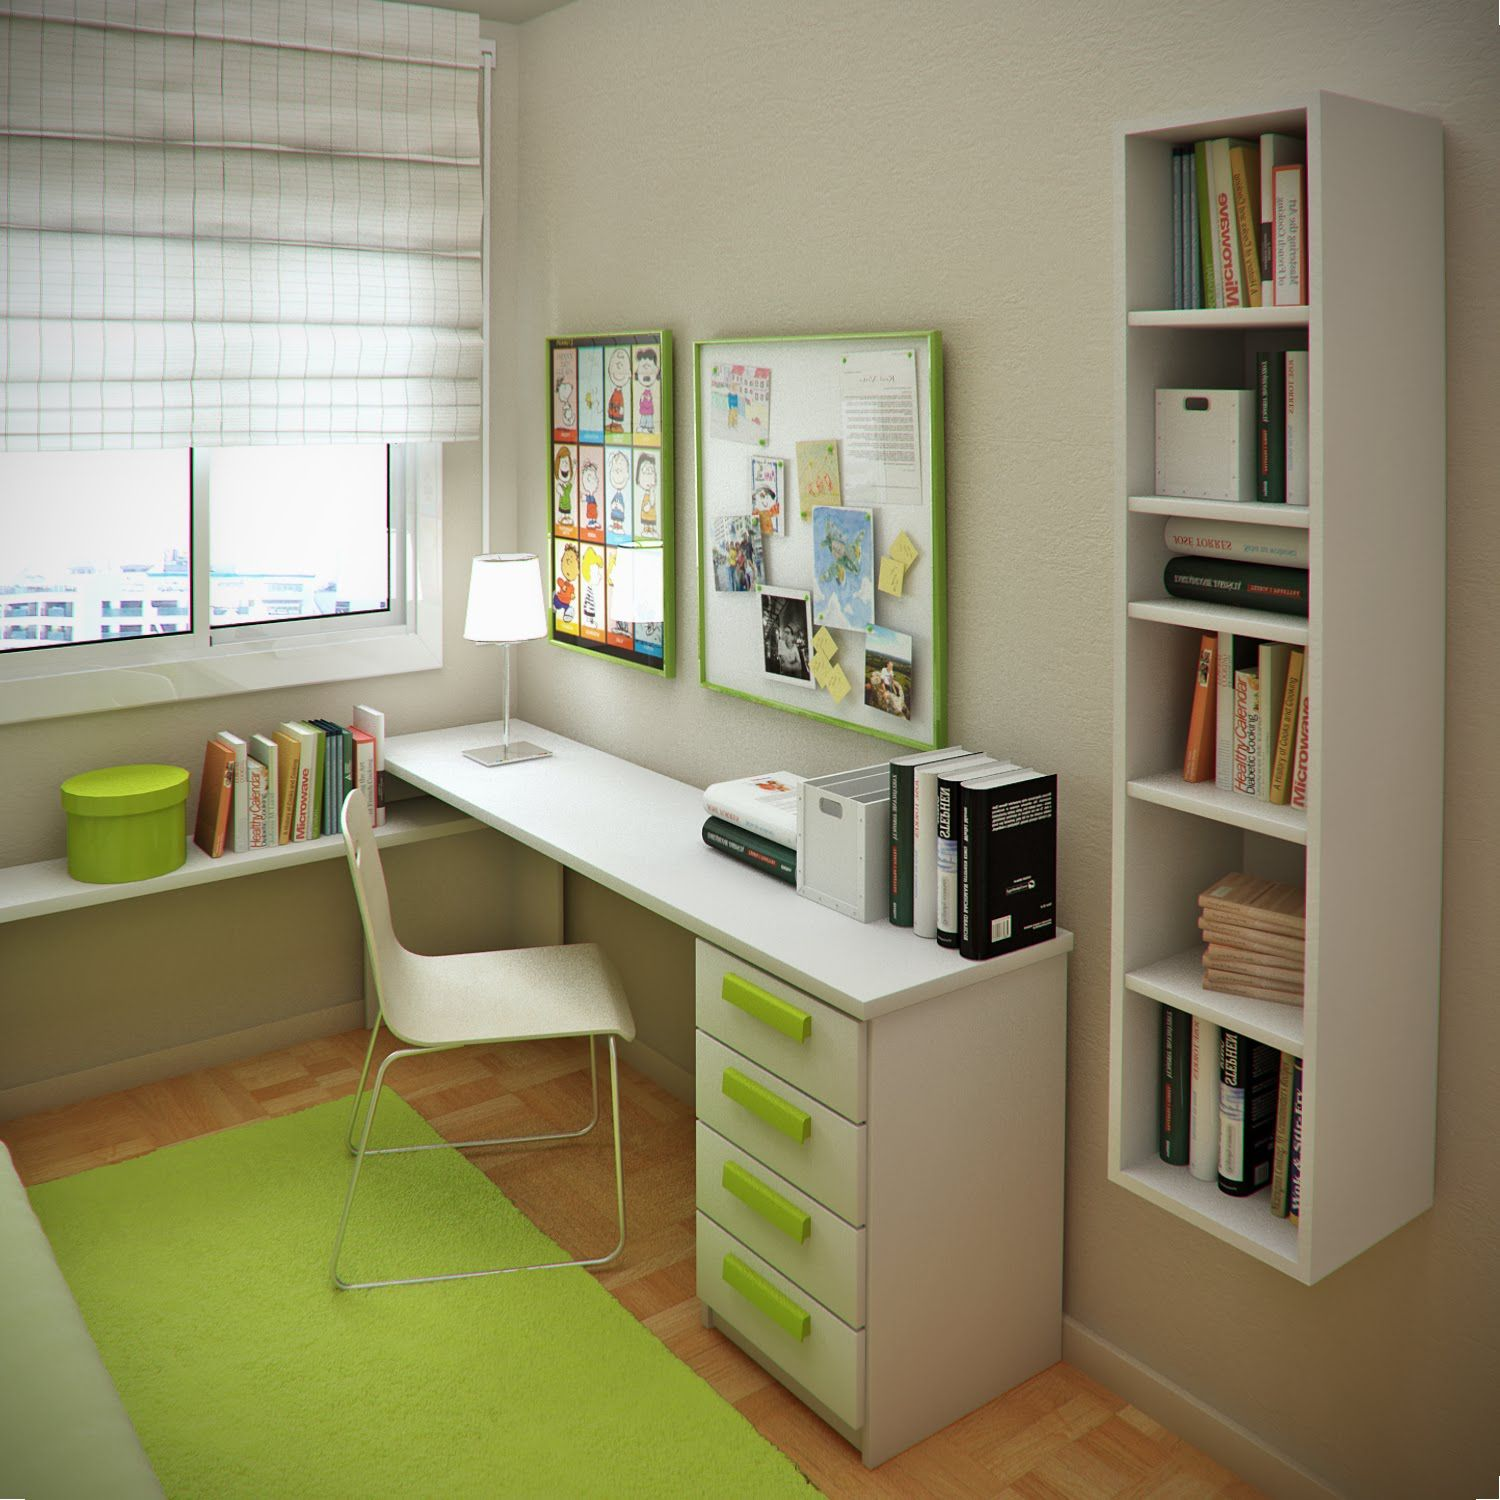 interior design ideas small homes - Study rooms, Study room design and Small rooms on Pinterest